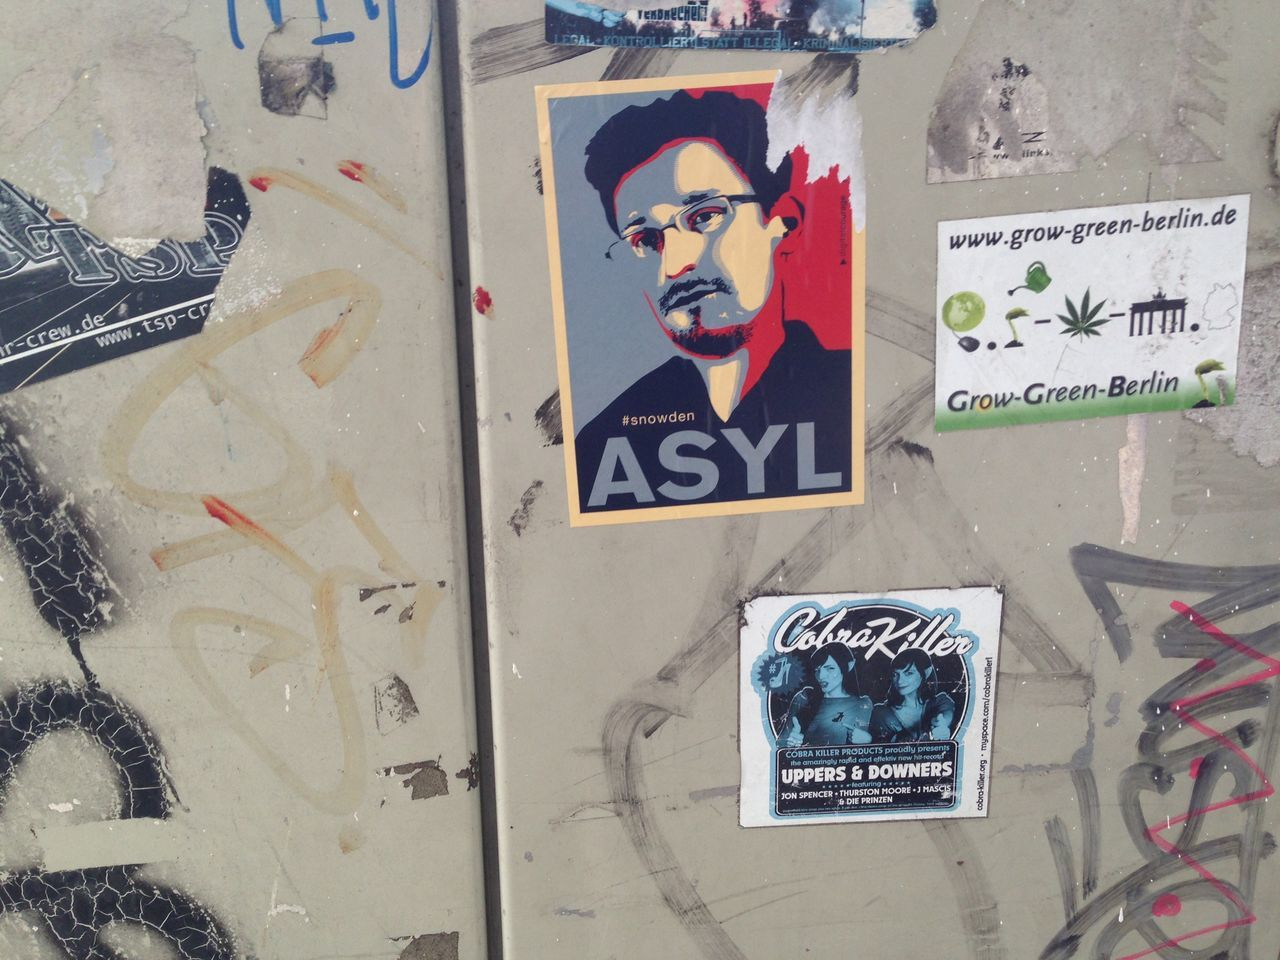 Asyl Close-up Distribution Box Distributor Box Edward Snowden Graffiti Smeared Stickers Text Verteilerkasten